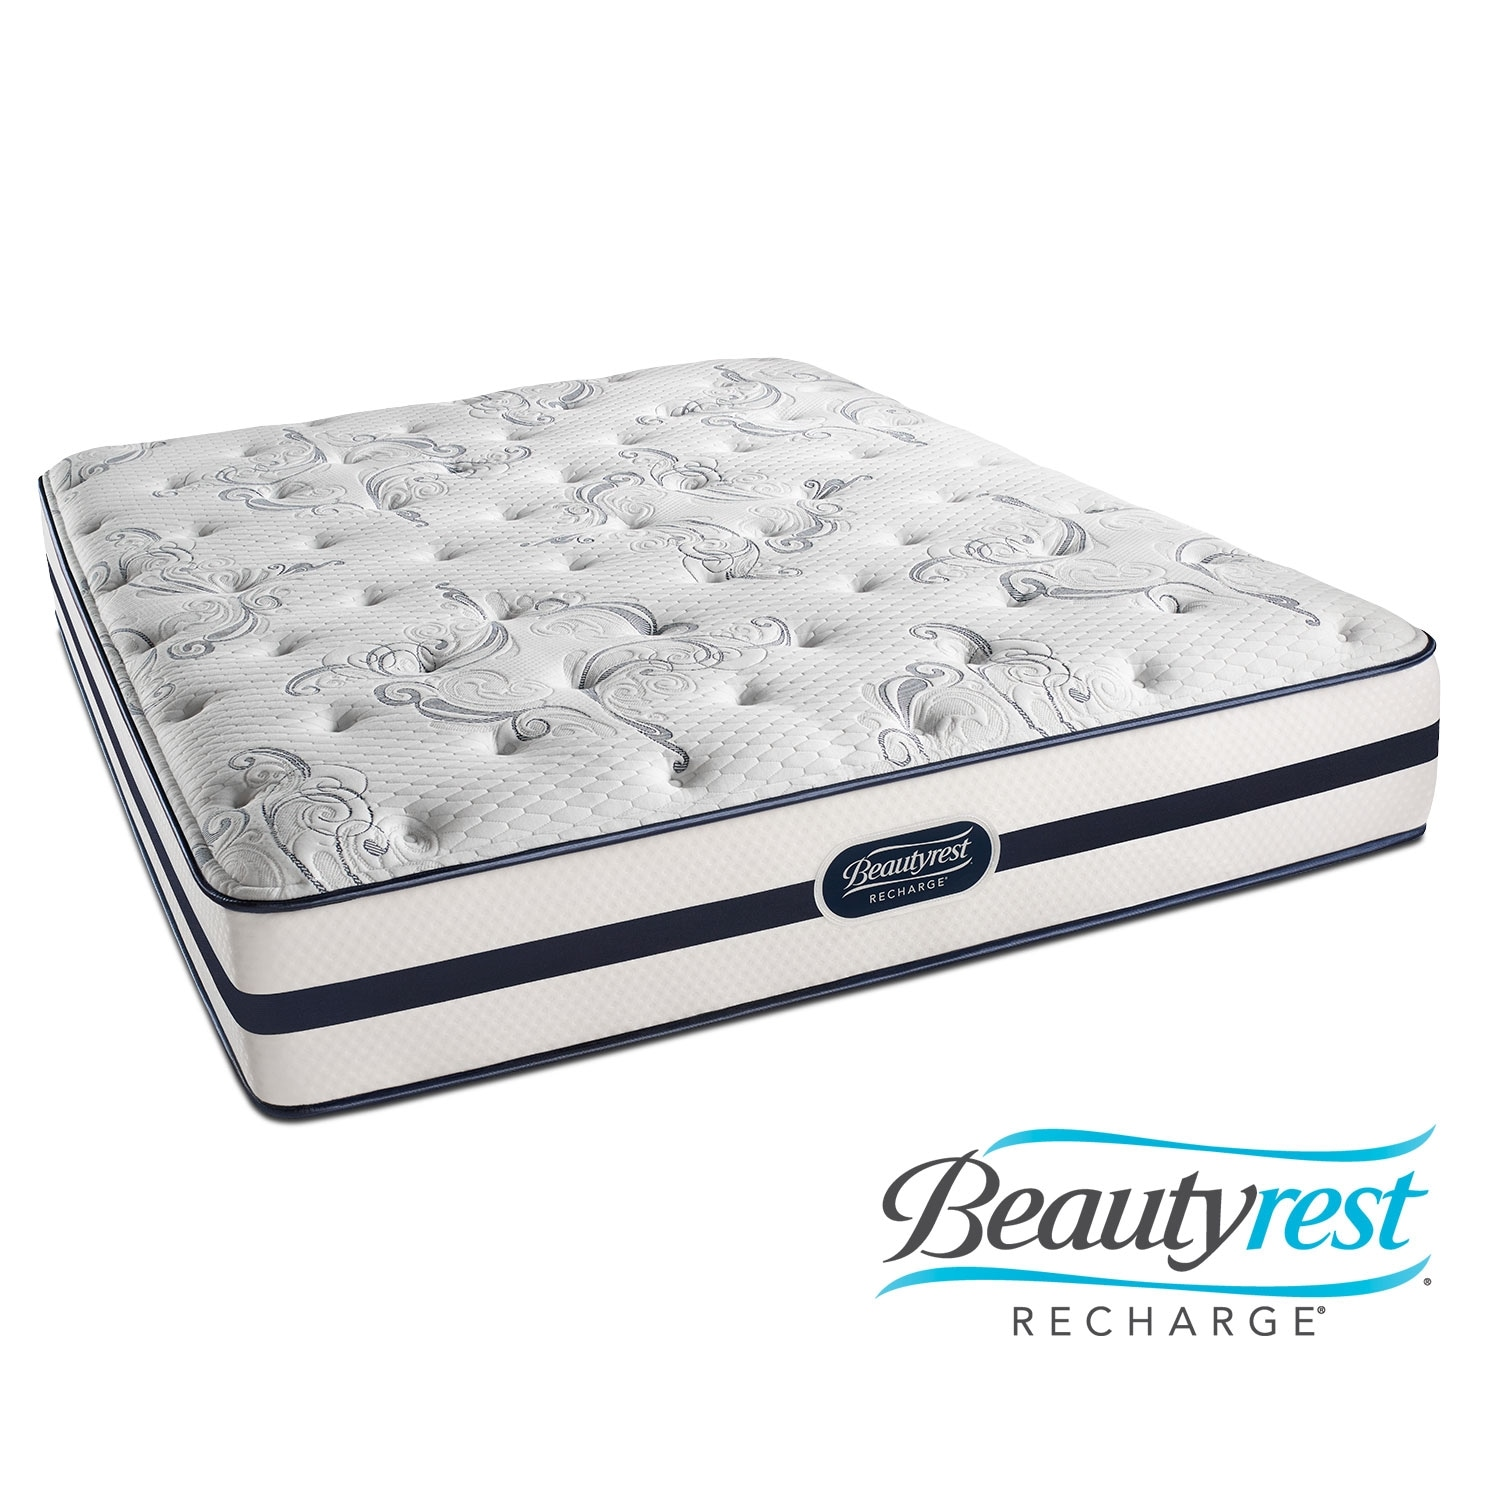 Mattresses and Bedding - Justine Plush Twin XL Mattress